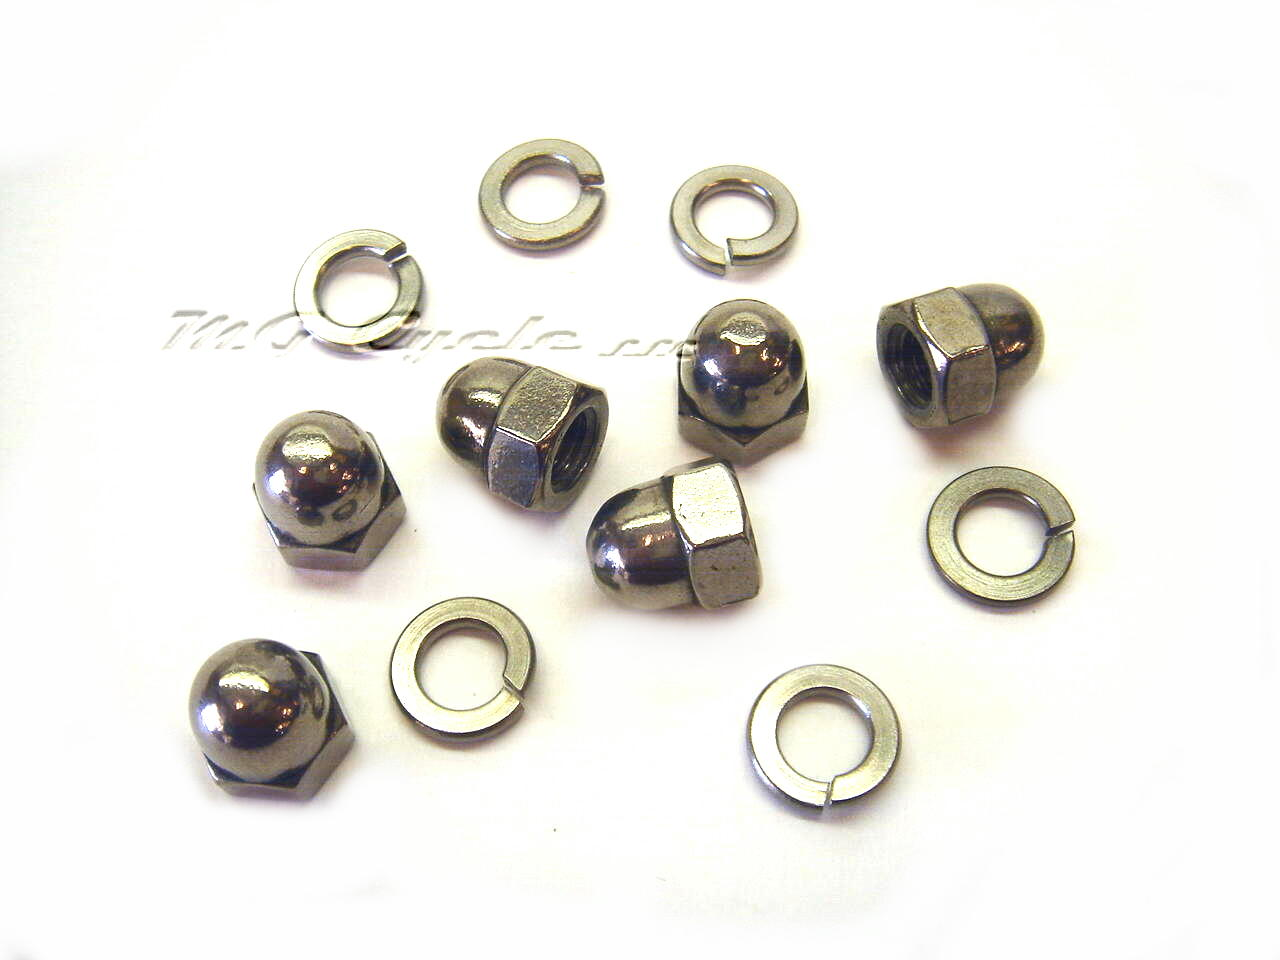 Stainless cap nut kit for transmission to engine on big twins